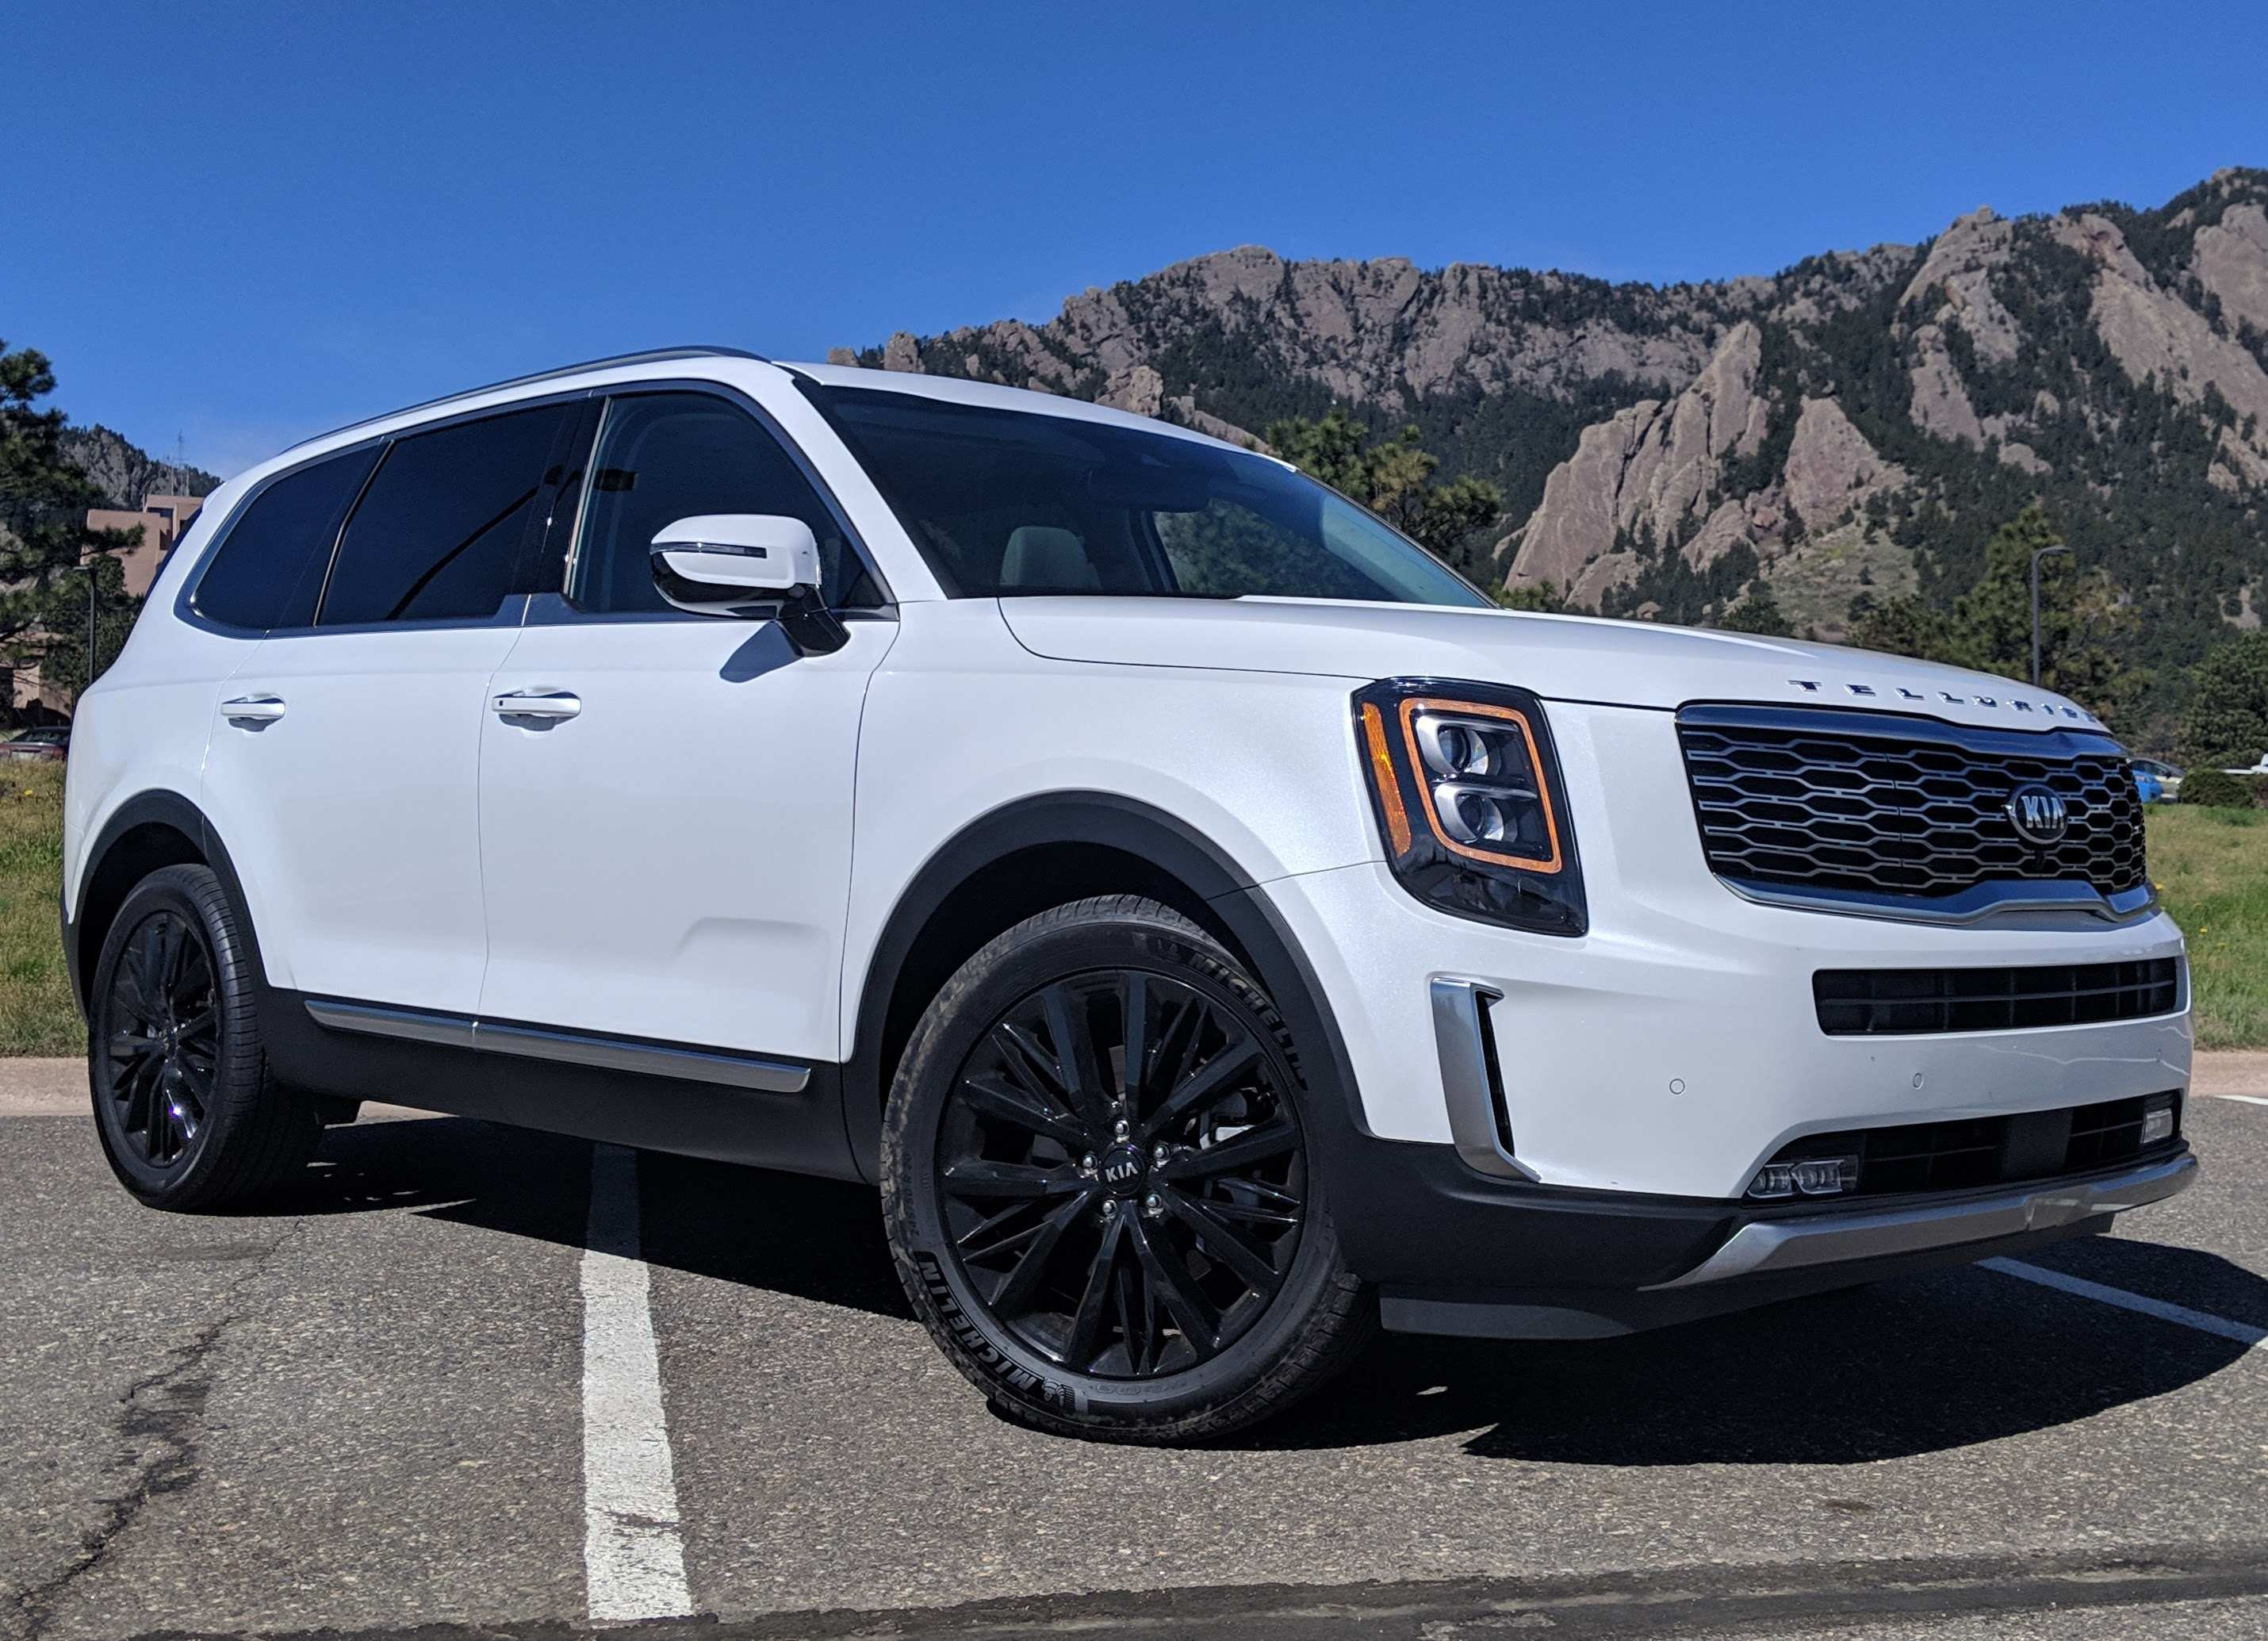 61 Best Review 2020 Kia Telluride Review Youtube Price with 2020 Kia Telluride Review Youtube